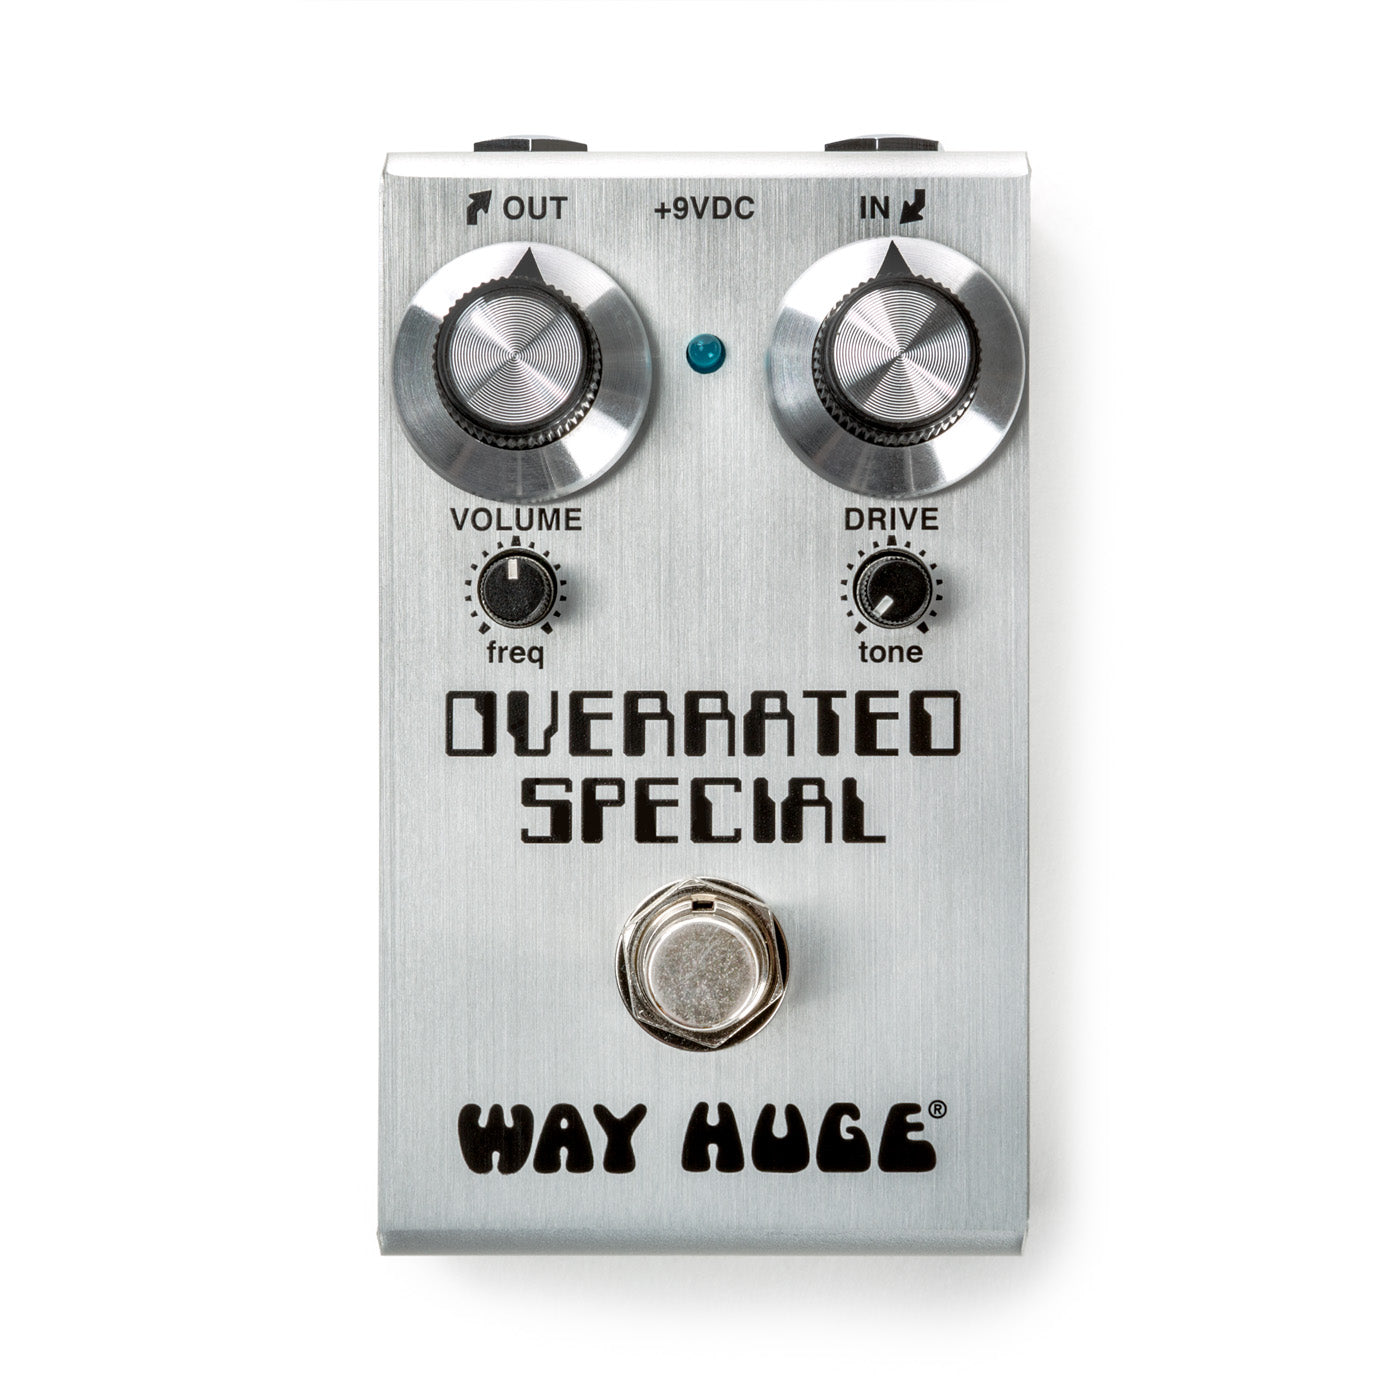 Way Huge Overrated Special Overdrive Mini